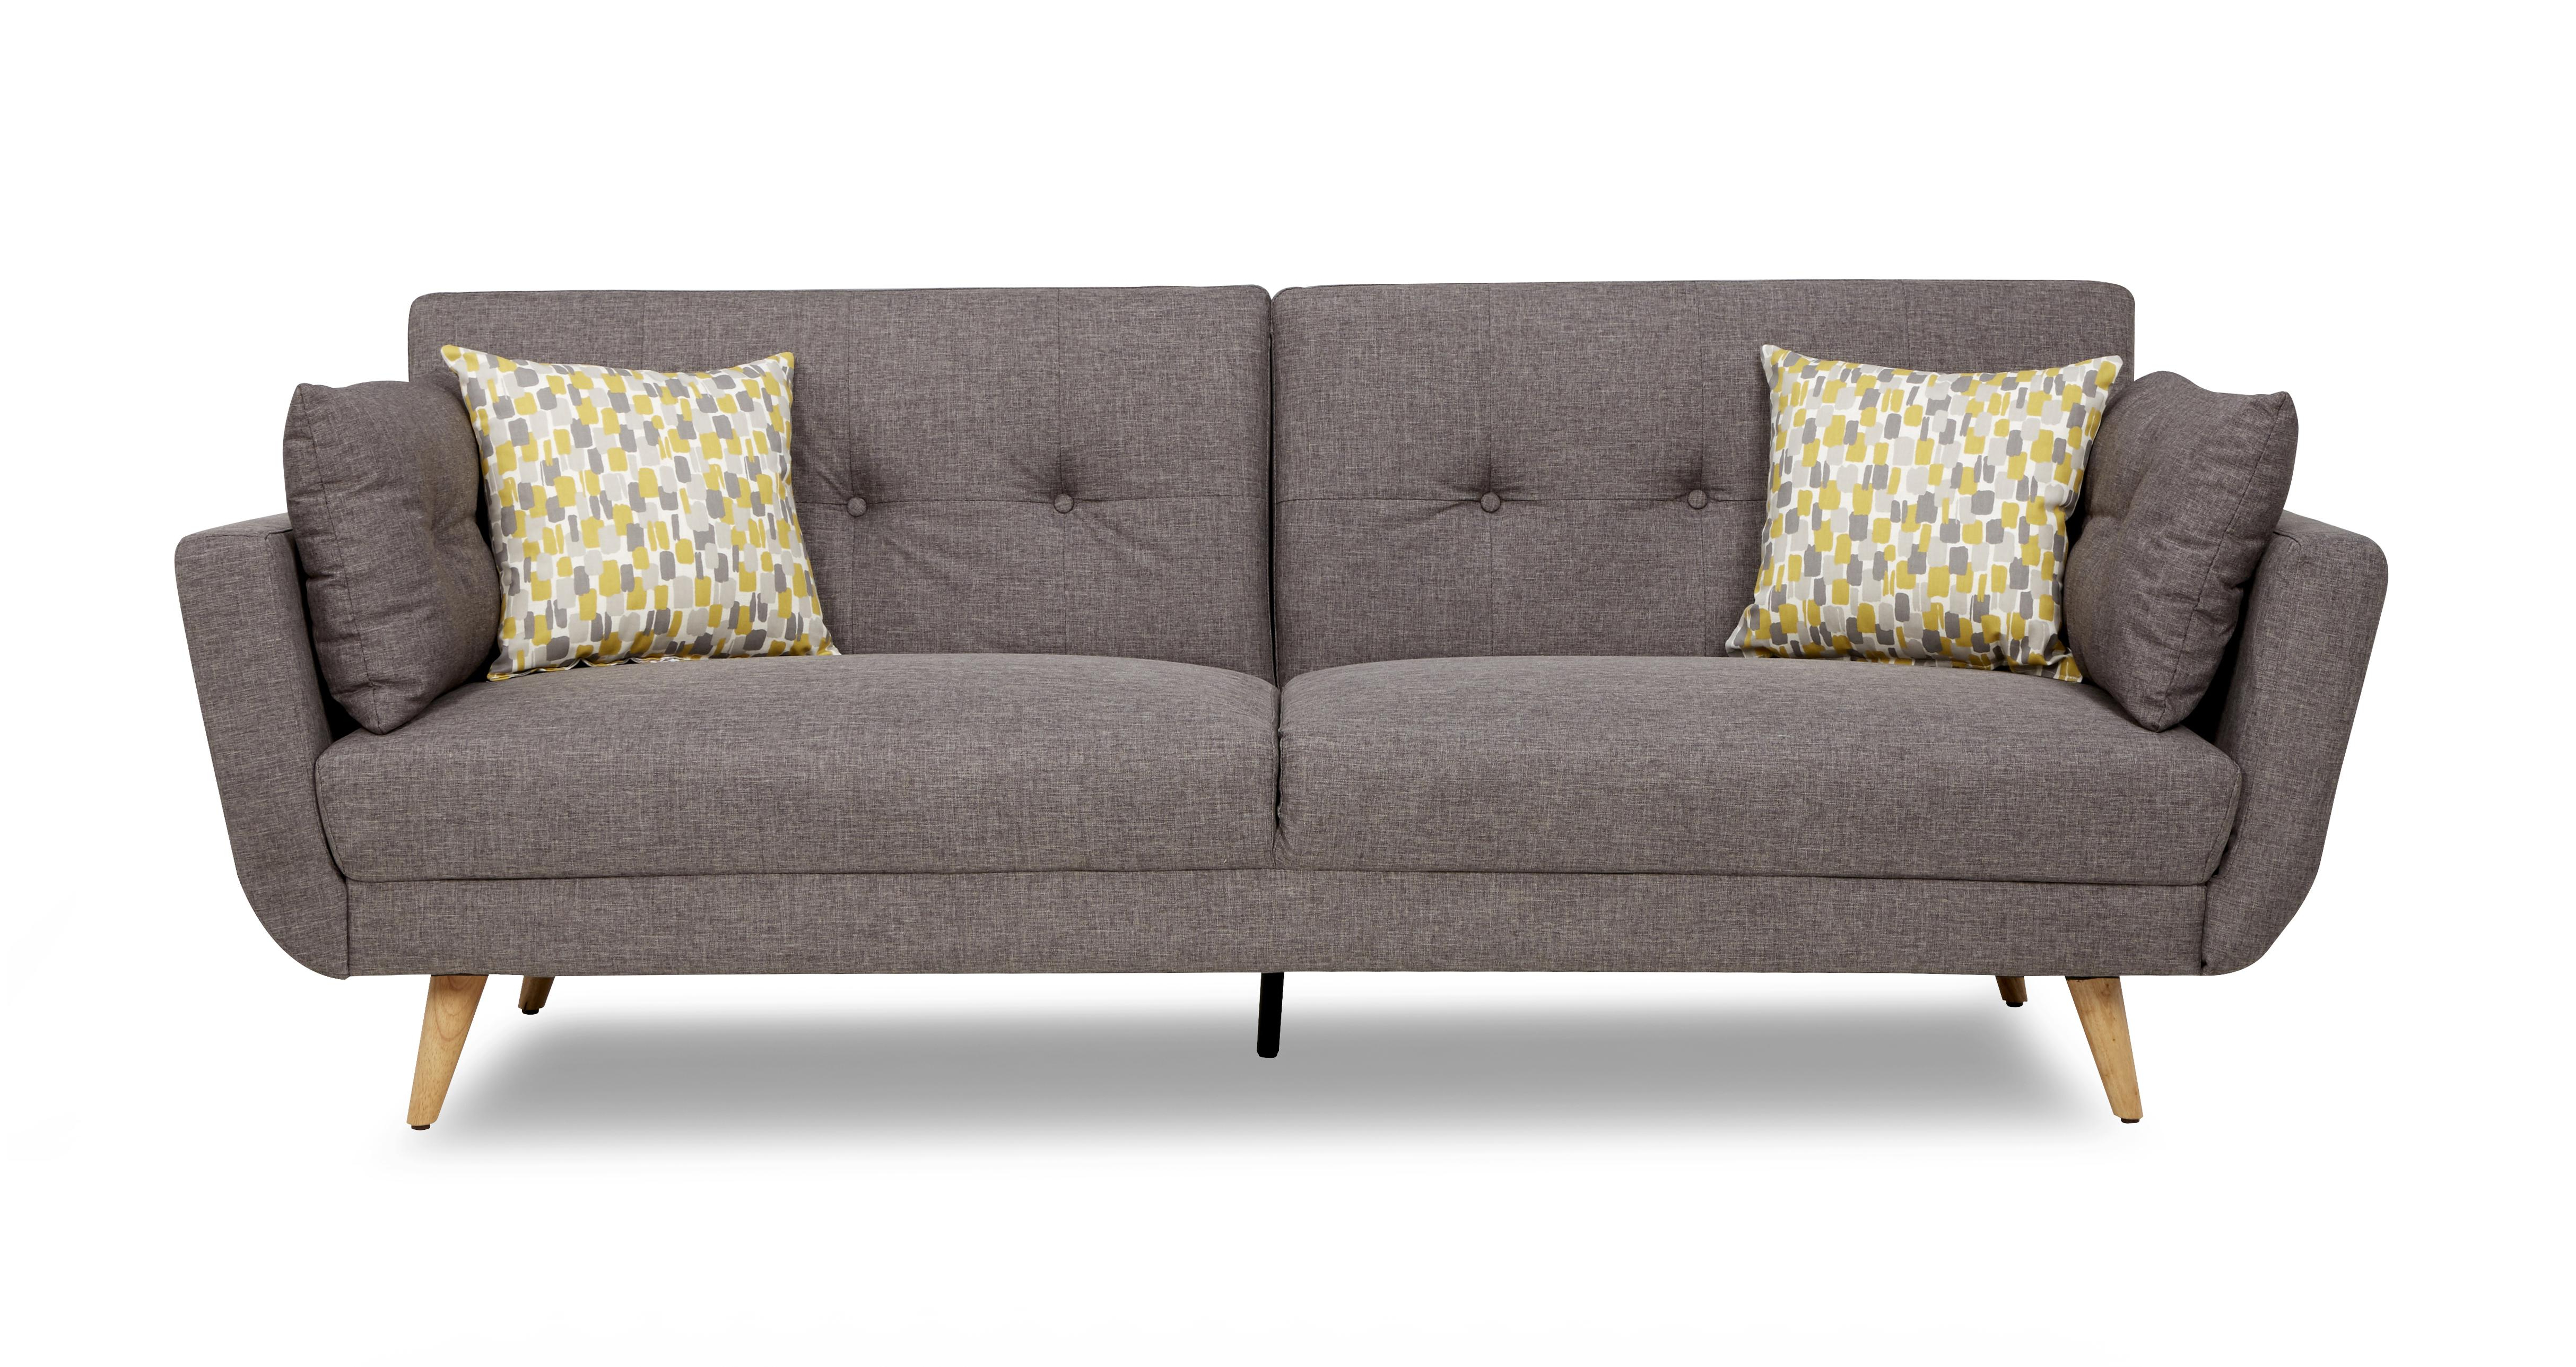 dfs sofas air sofa price in india d0dg seating settees ebay sharon leal tqd3 inca sofabed